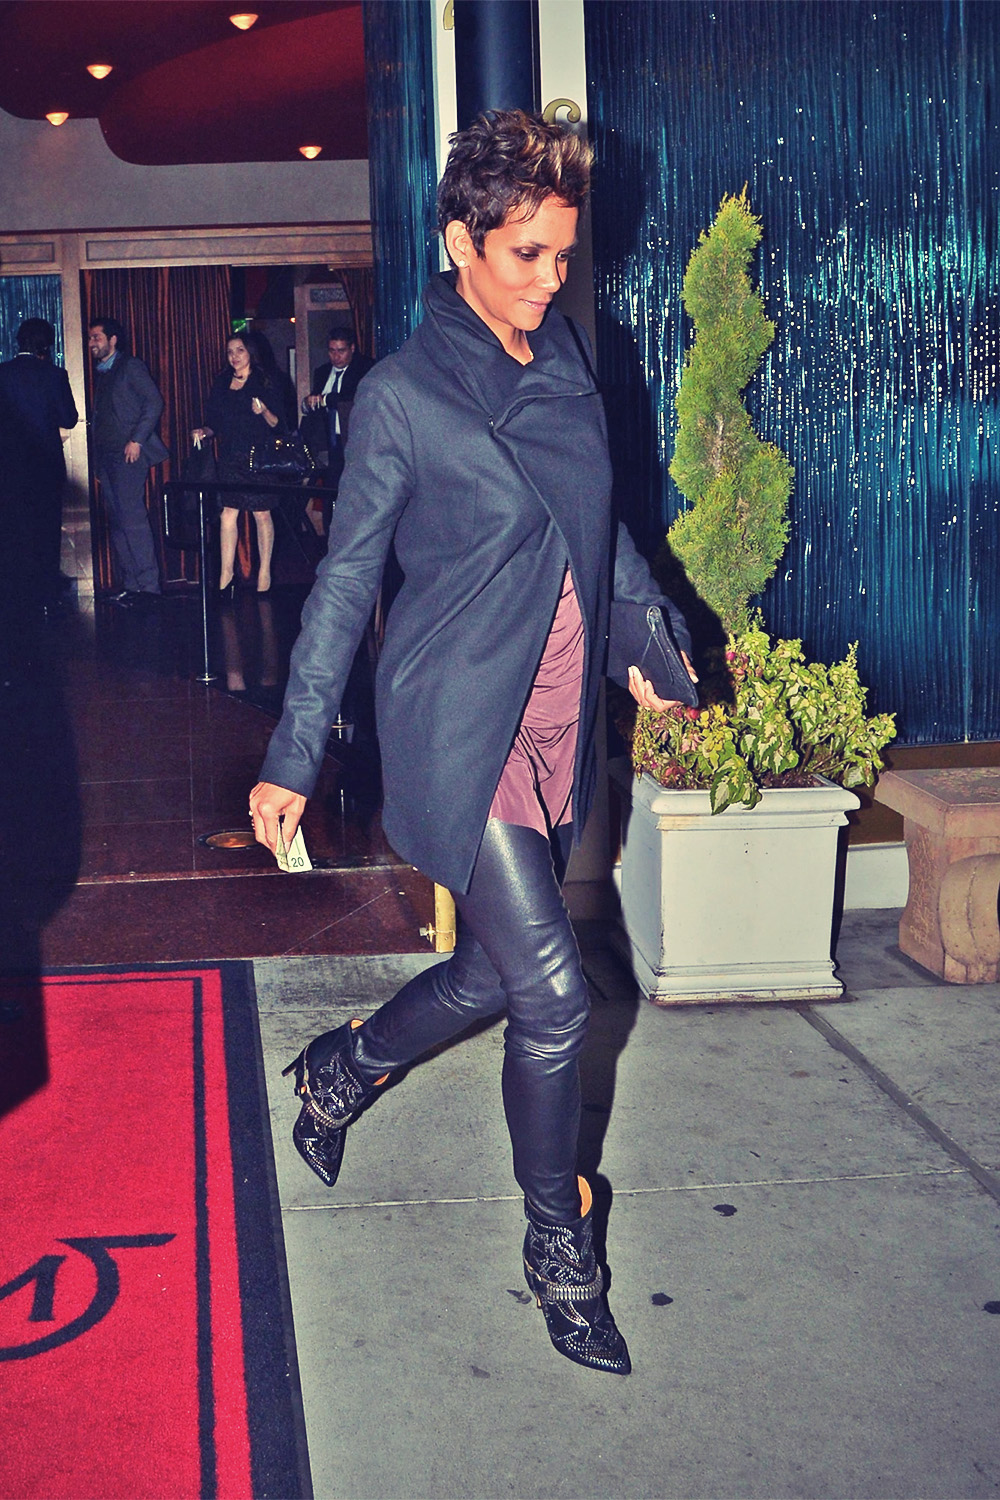 Halle Berry leaves Mastro's Steakhouse